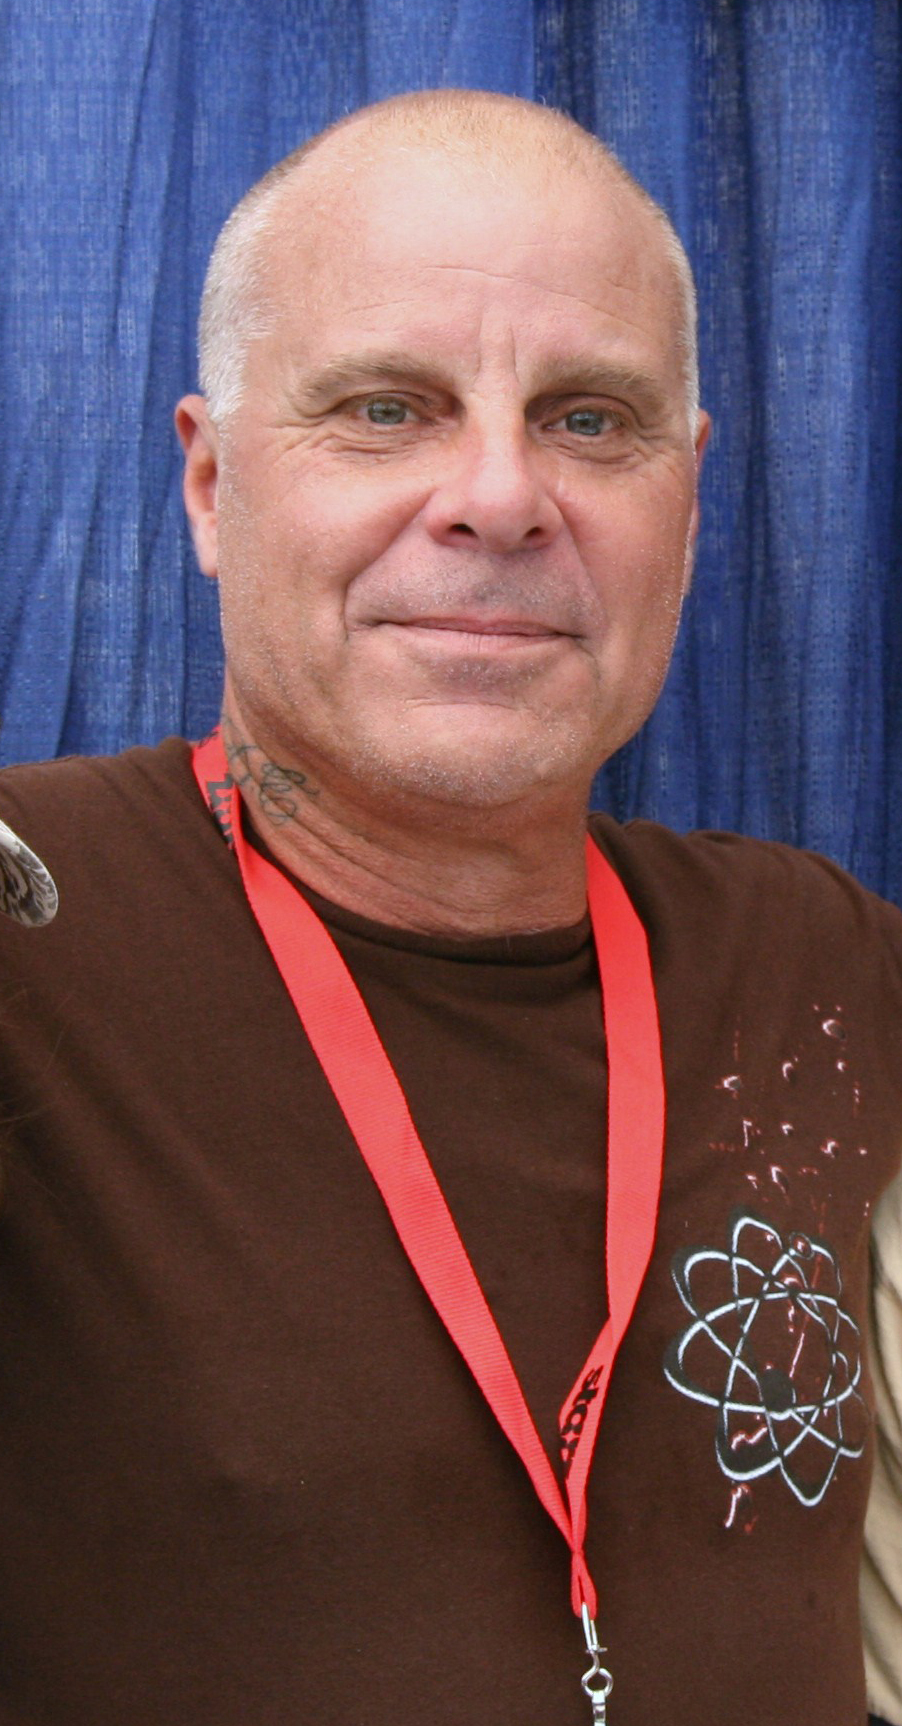 tony moran (actor) - wikipedia